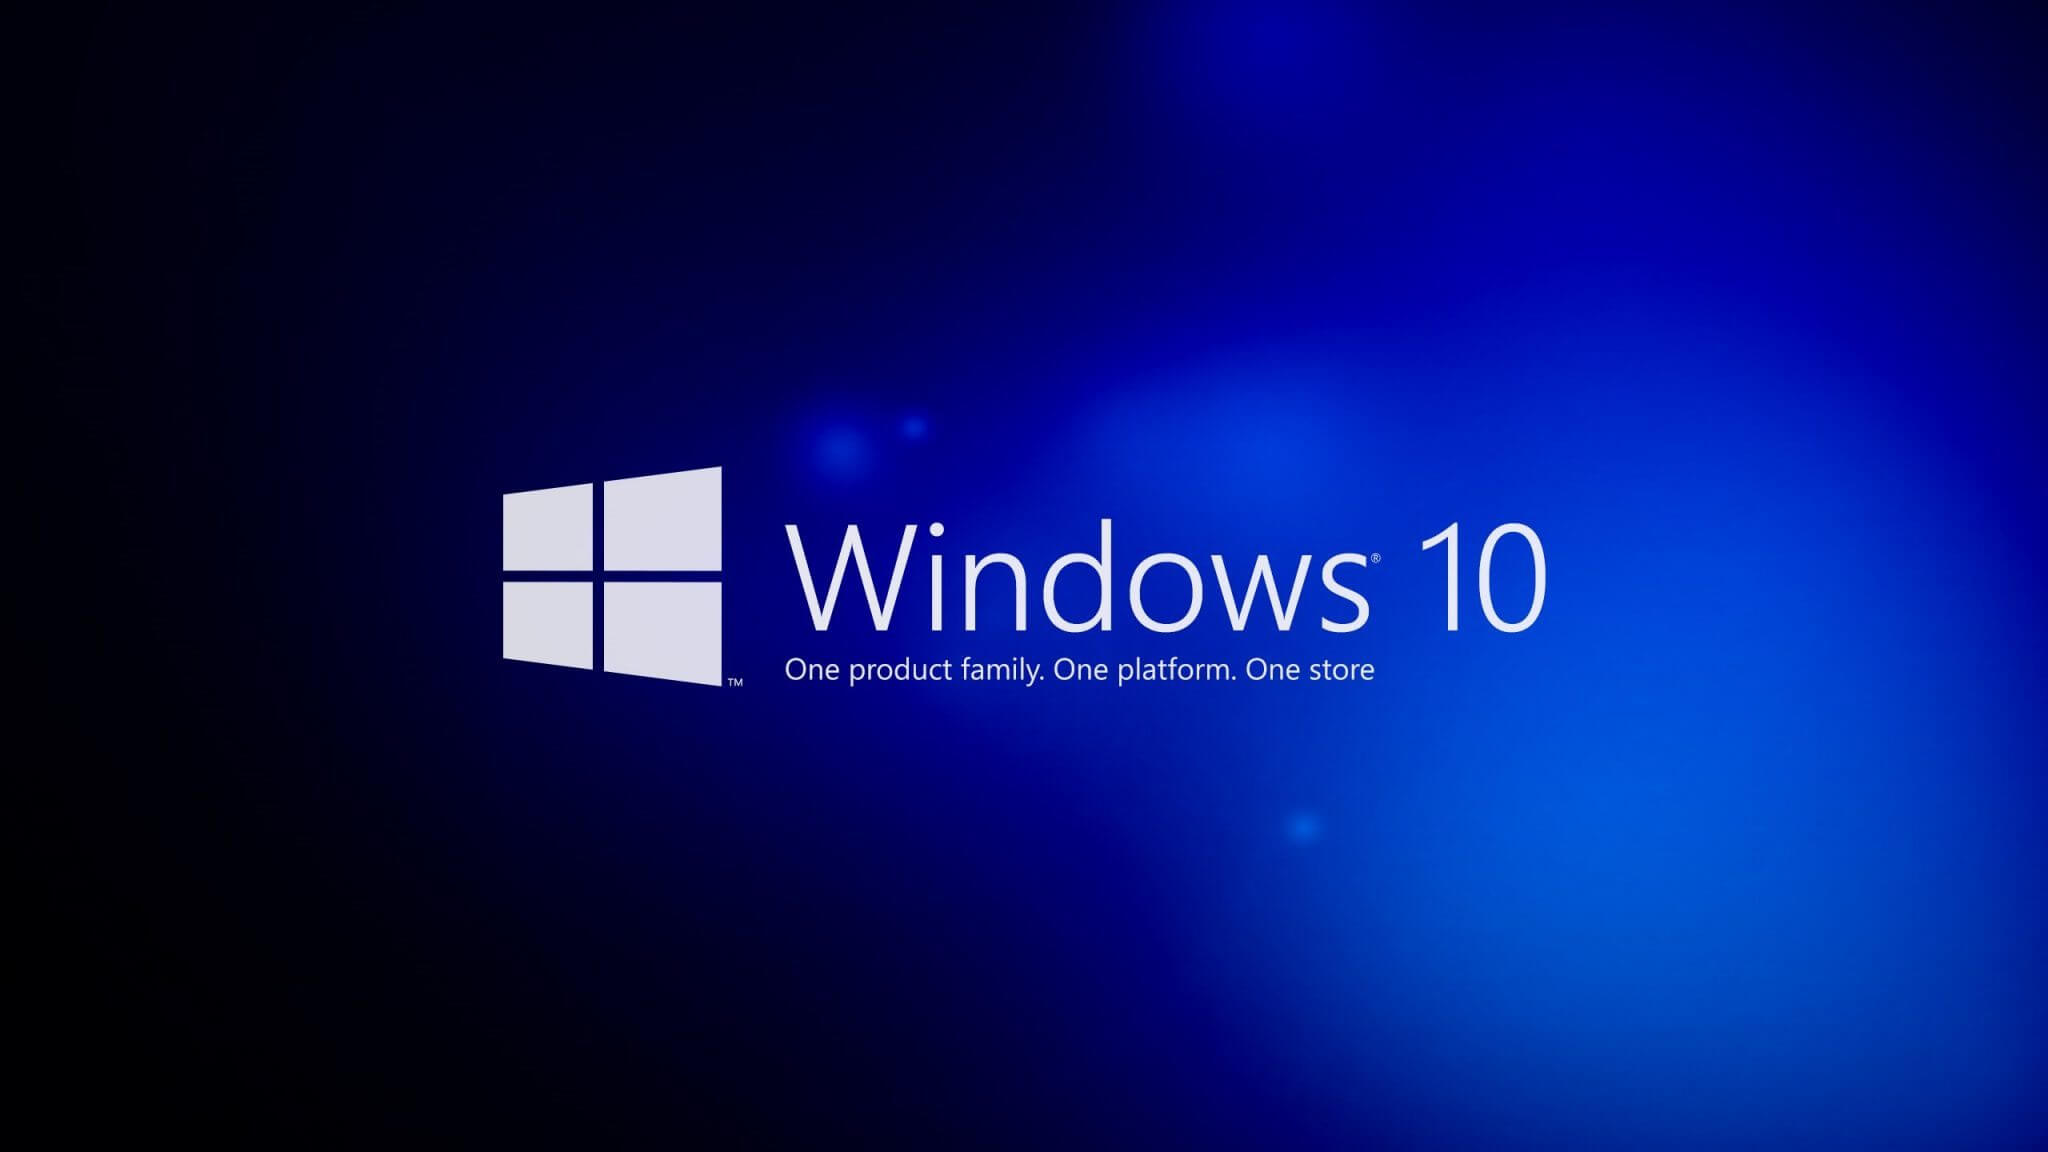 Microsoft libera Windows 10 Insider Preview Build 14986 para PC. Confira as novidades